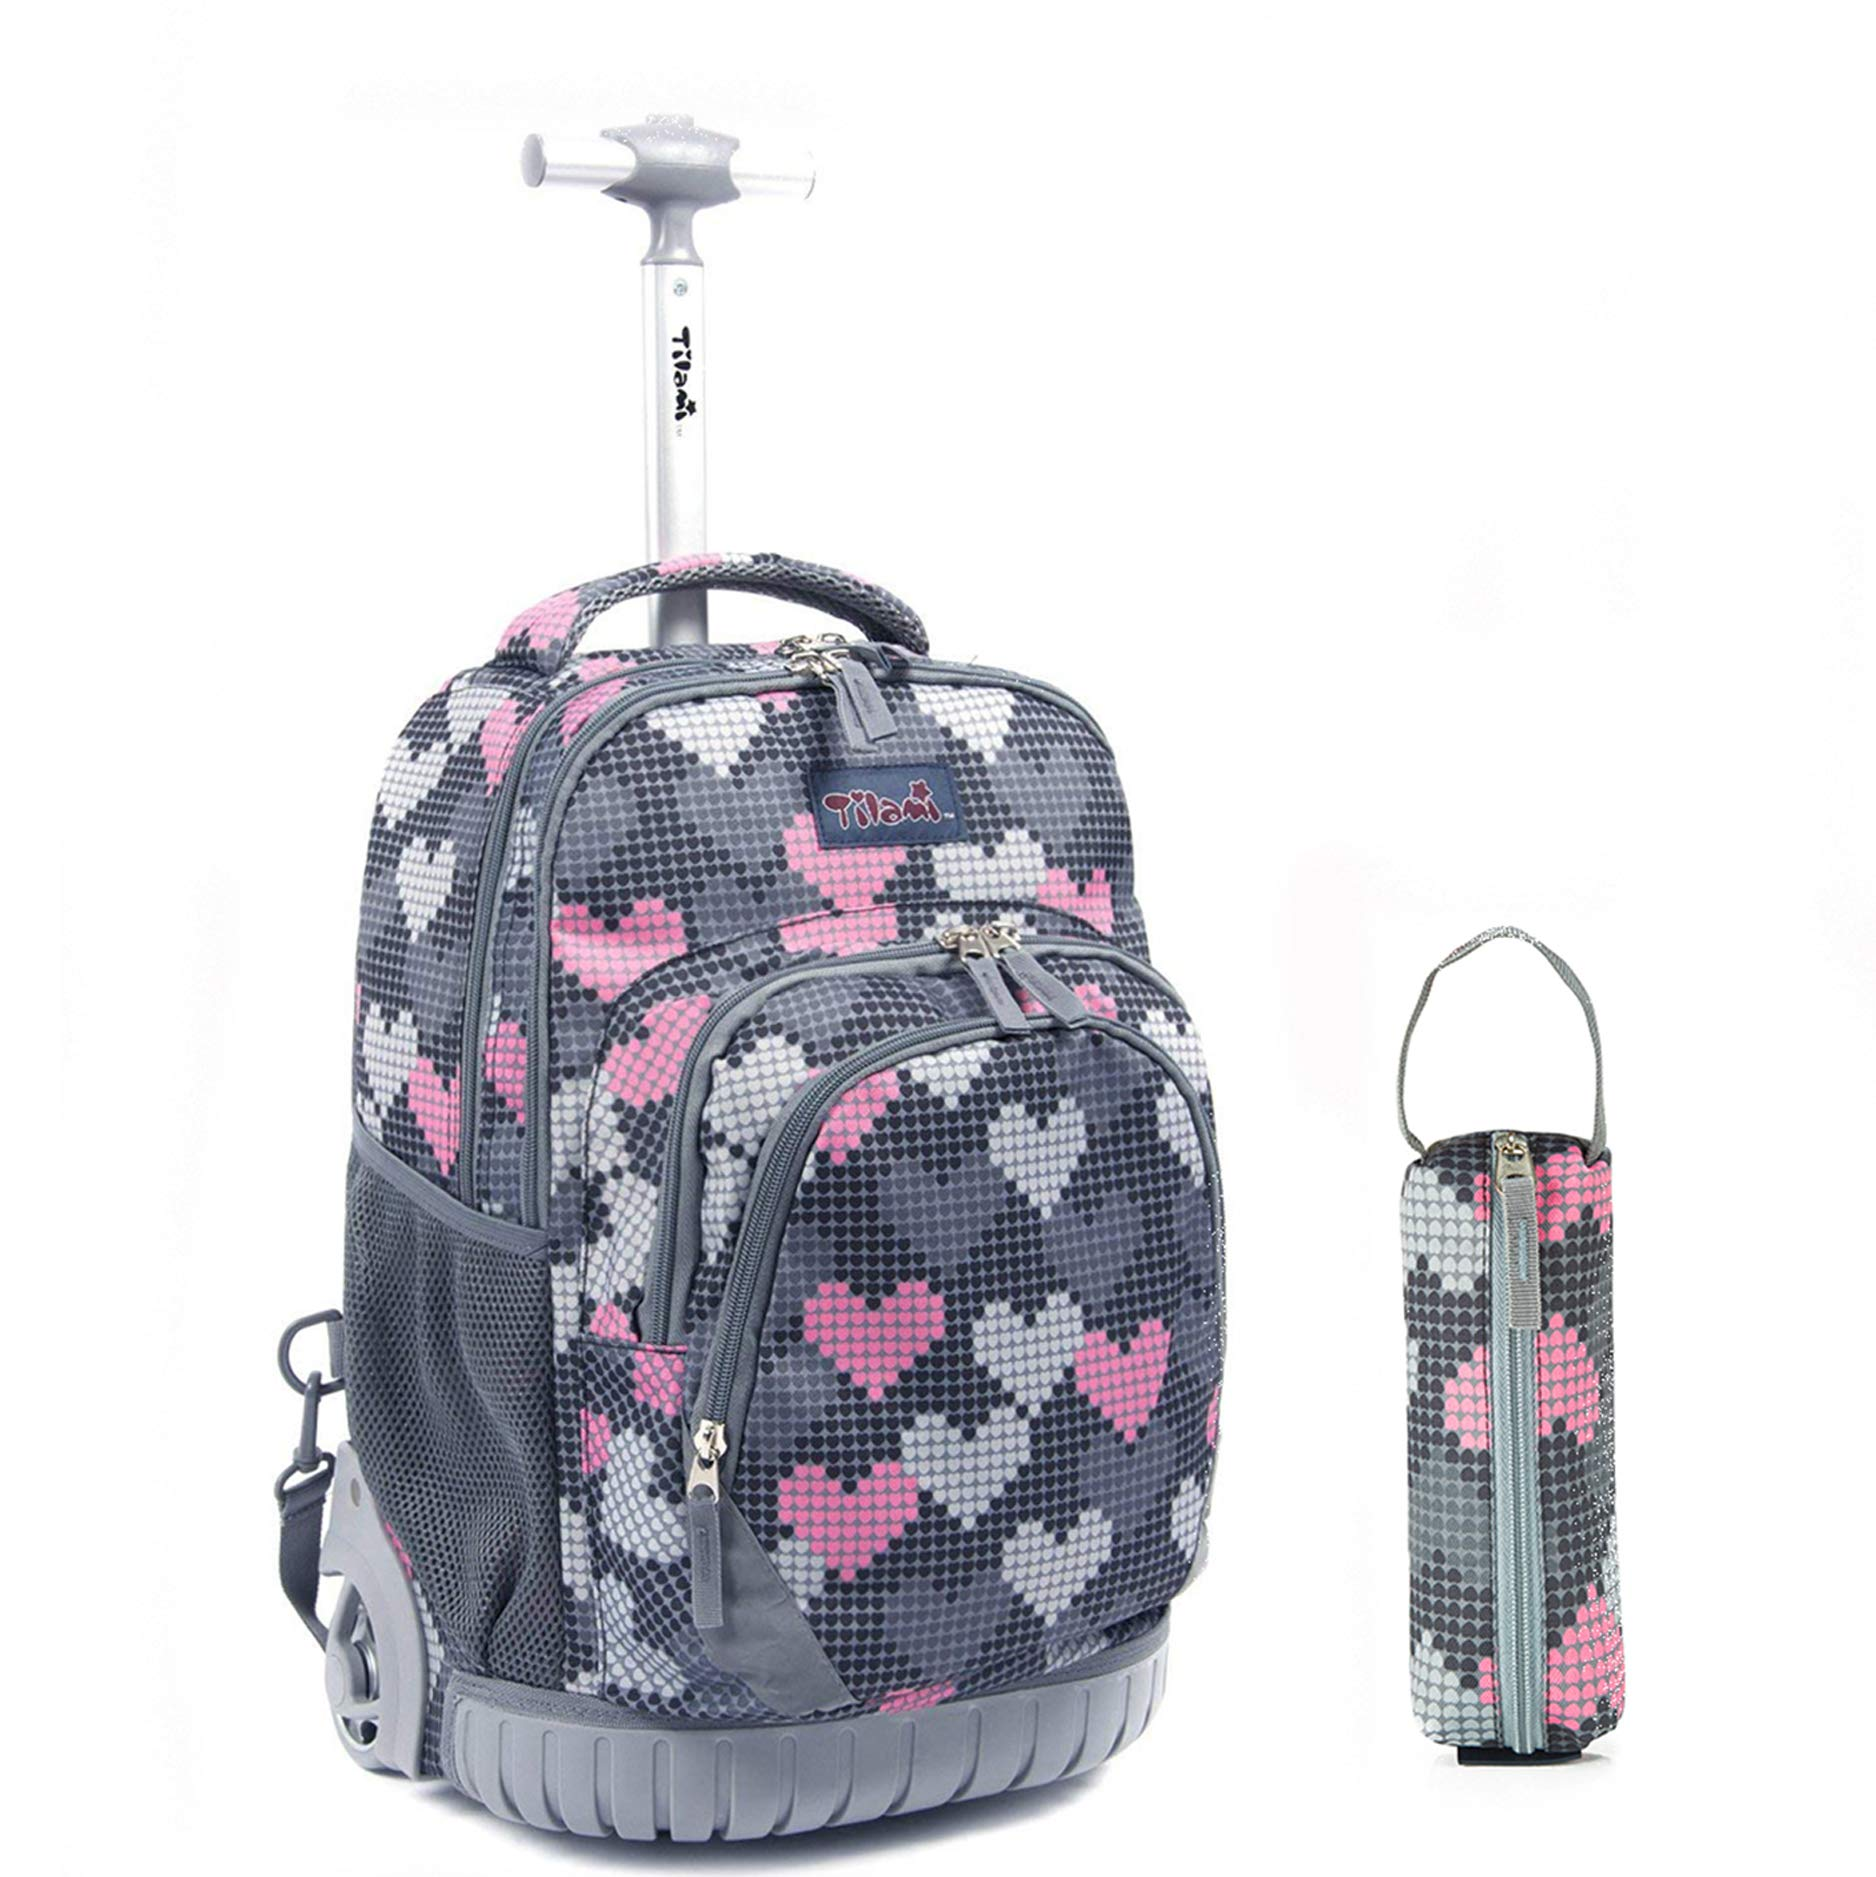 Tilami Rolling Backpack 18 Inch for School Travel with Pencil Case (Grey Heart)